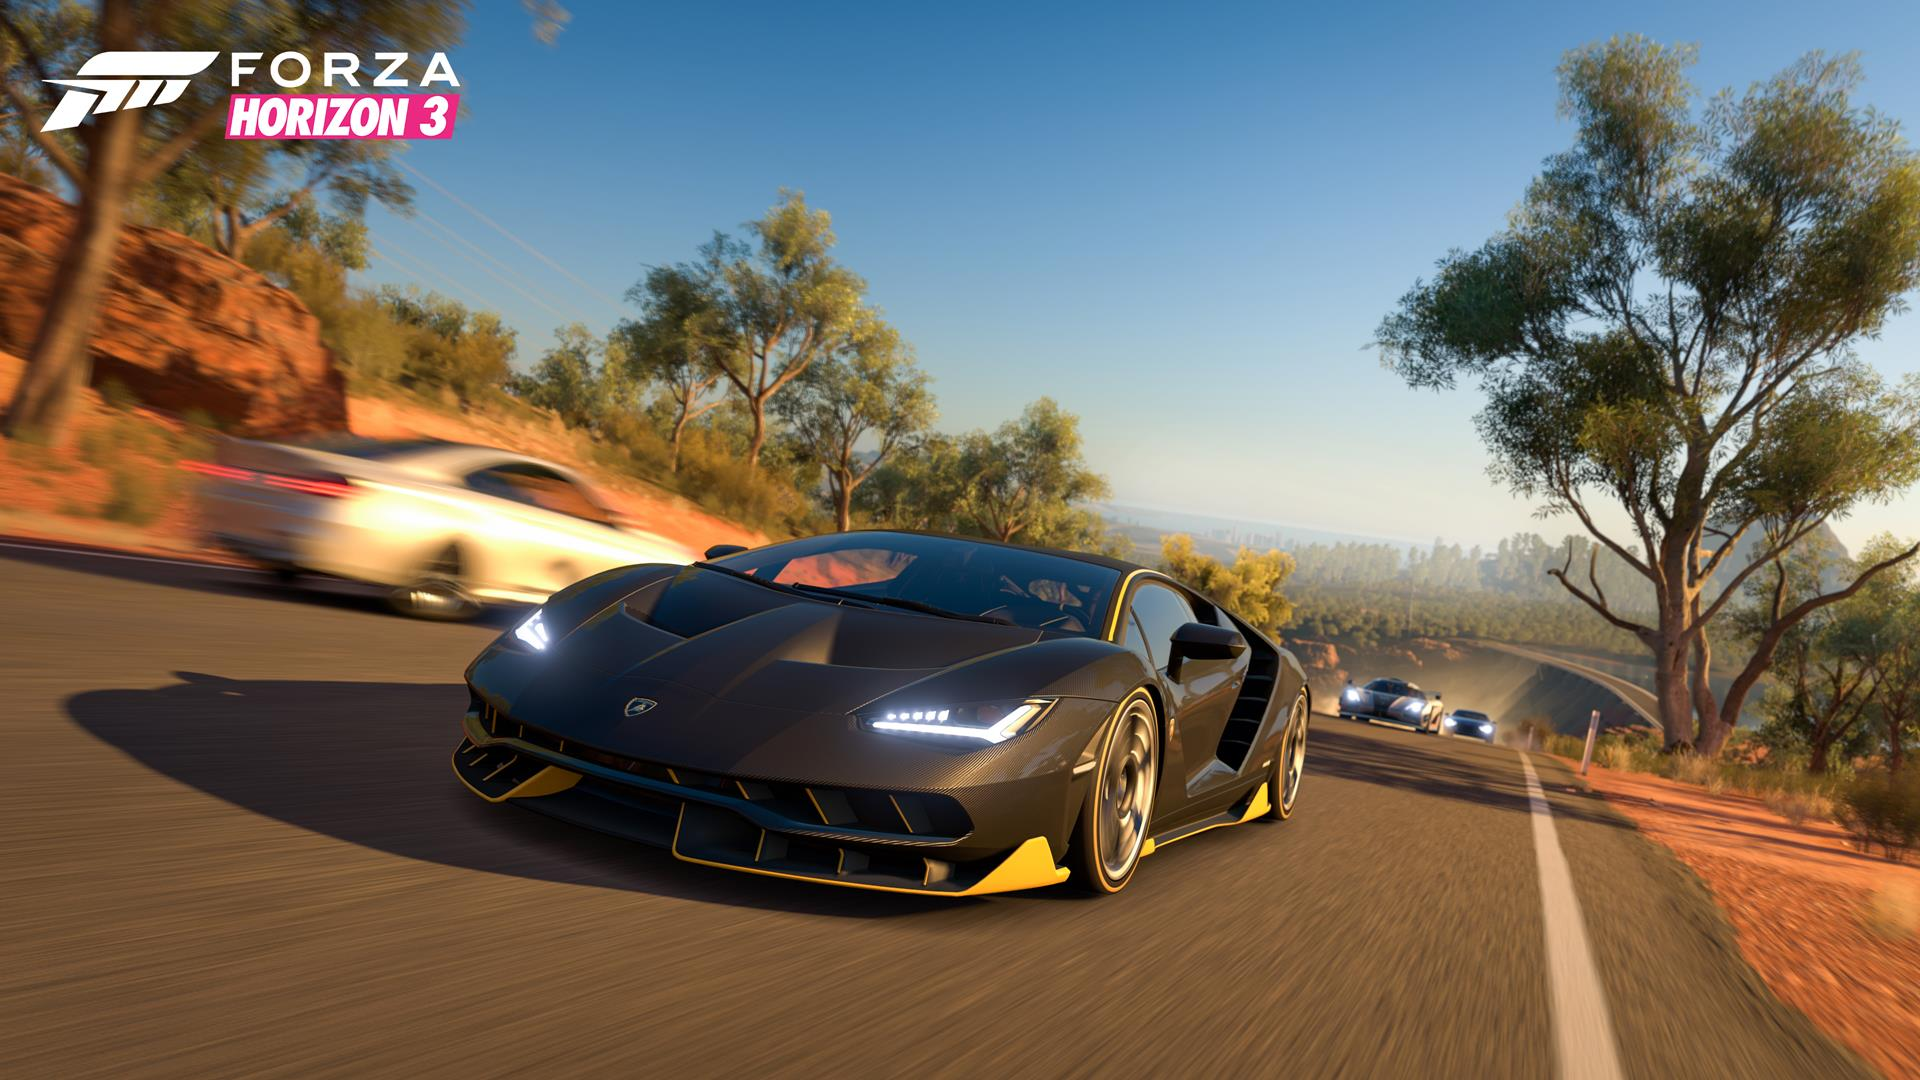 can forza horizon 3 be played on windows 7